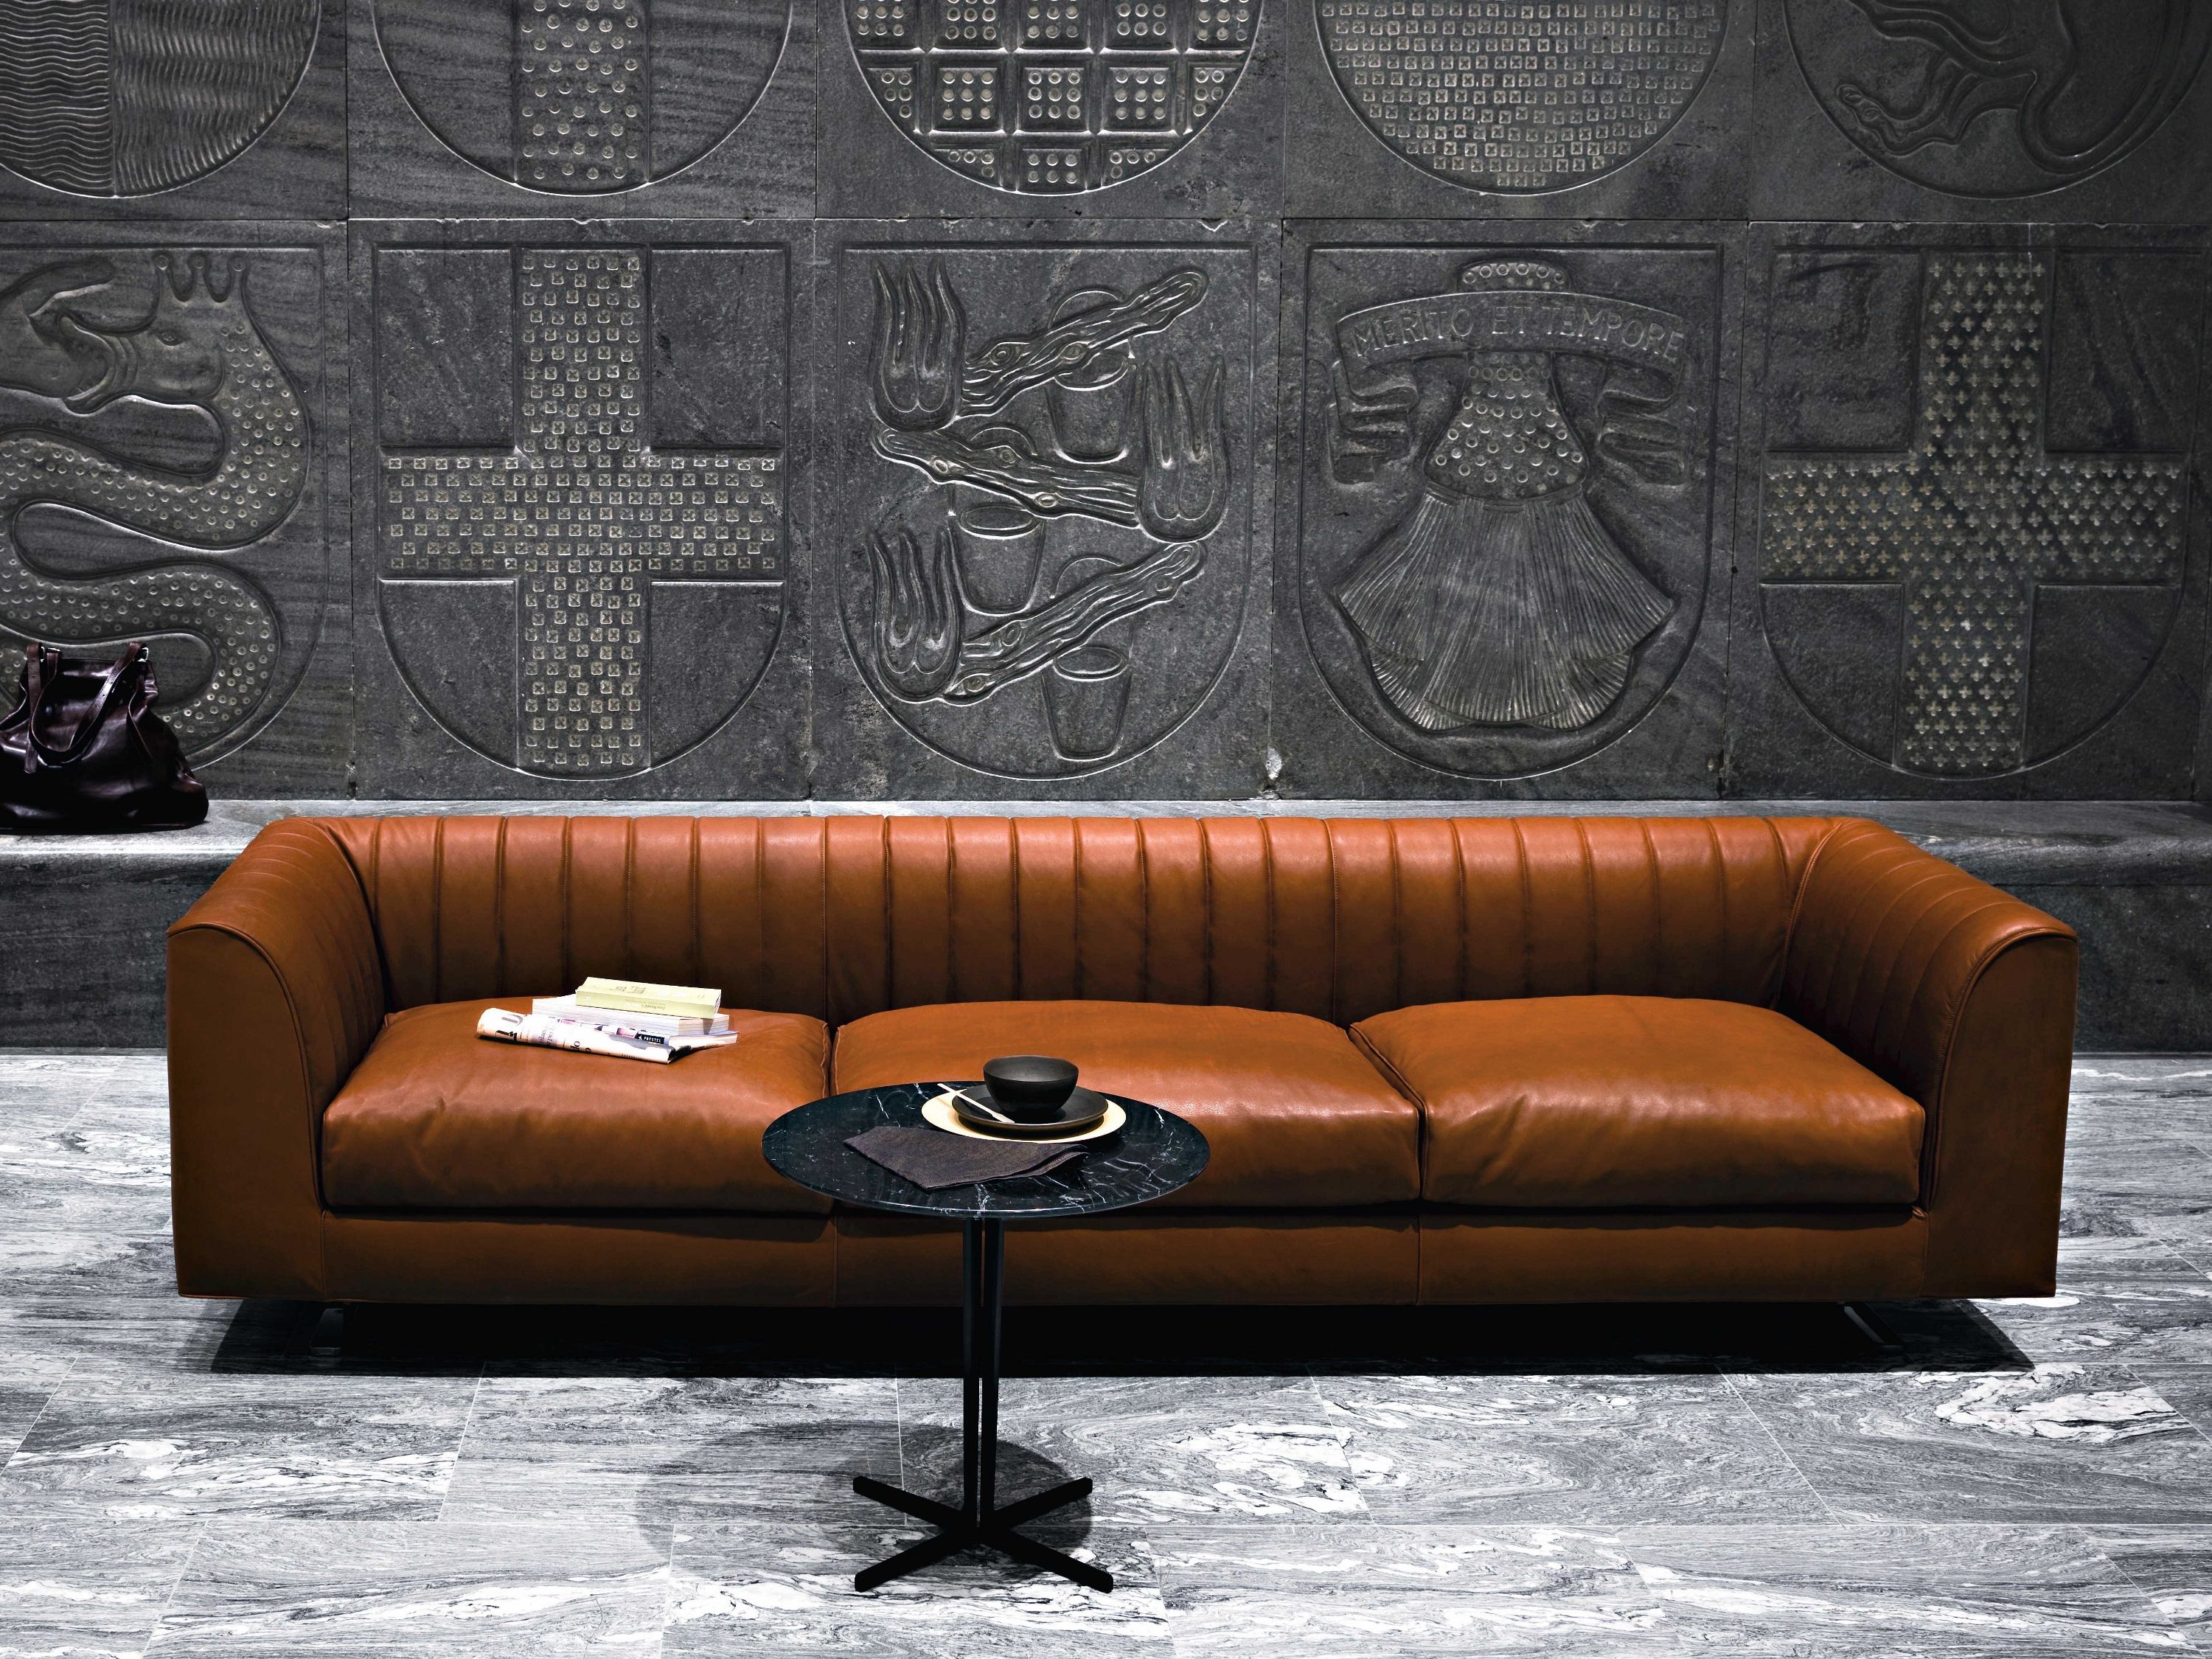 QUILT  Leather sofa By Tacchini design PearsonLloyd  Quilted